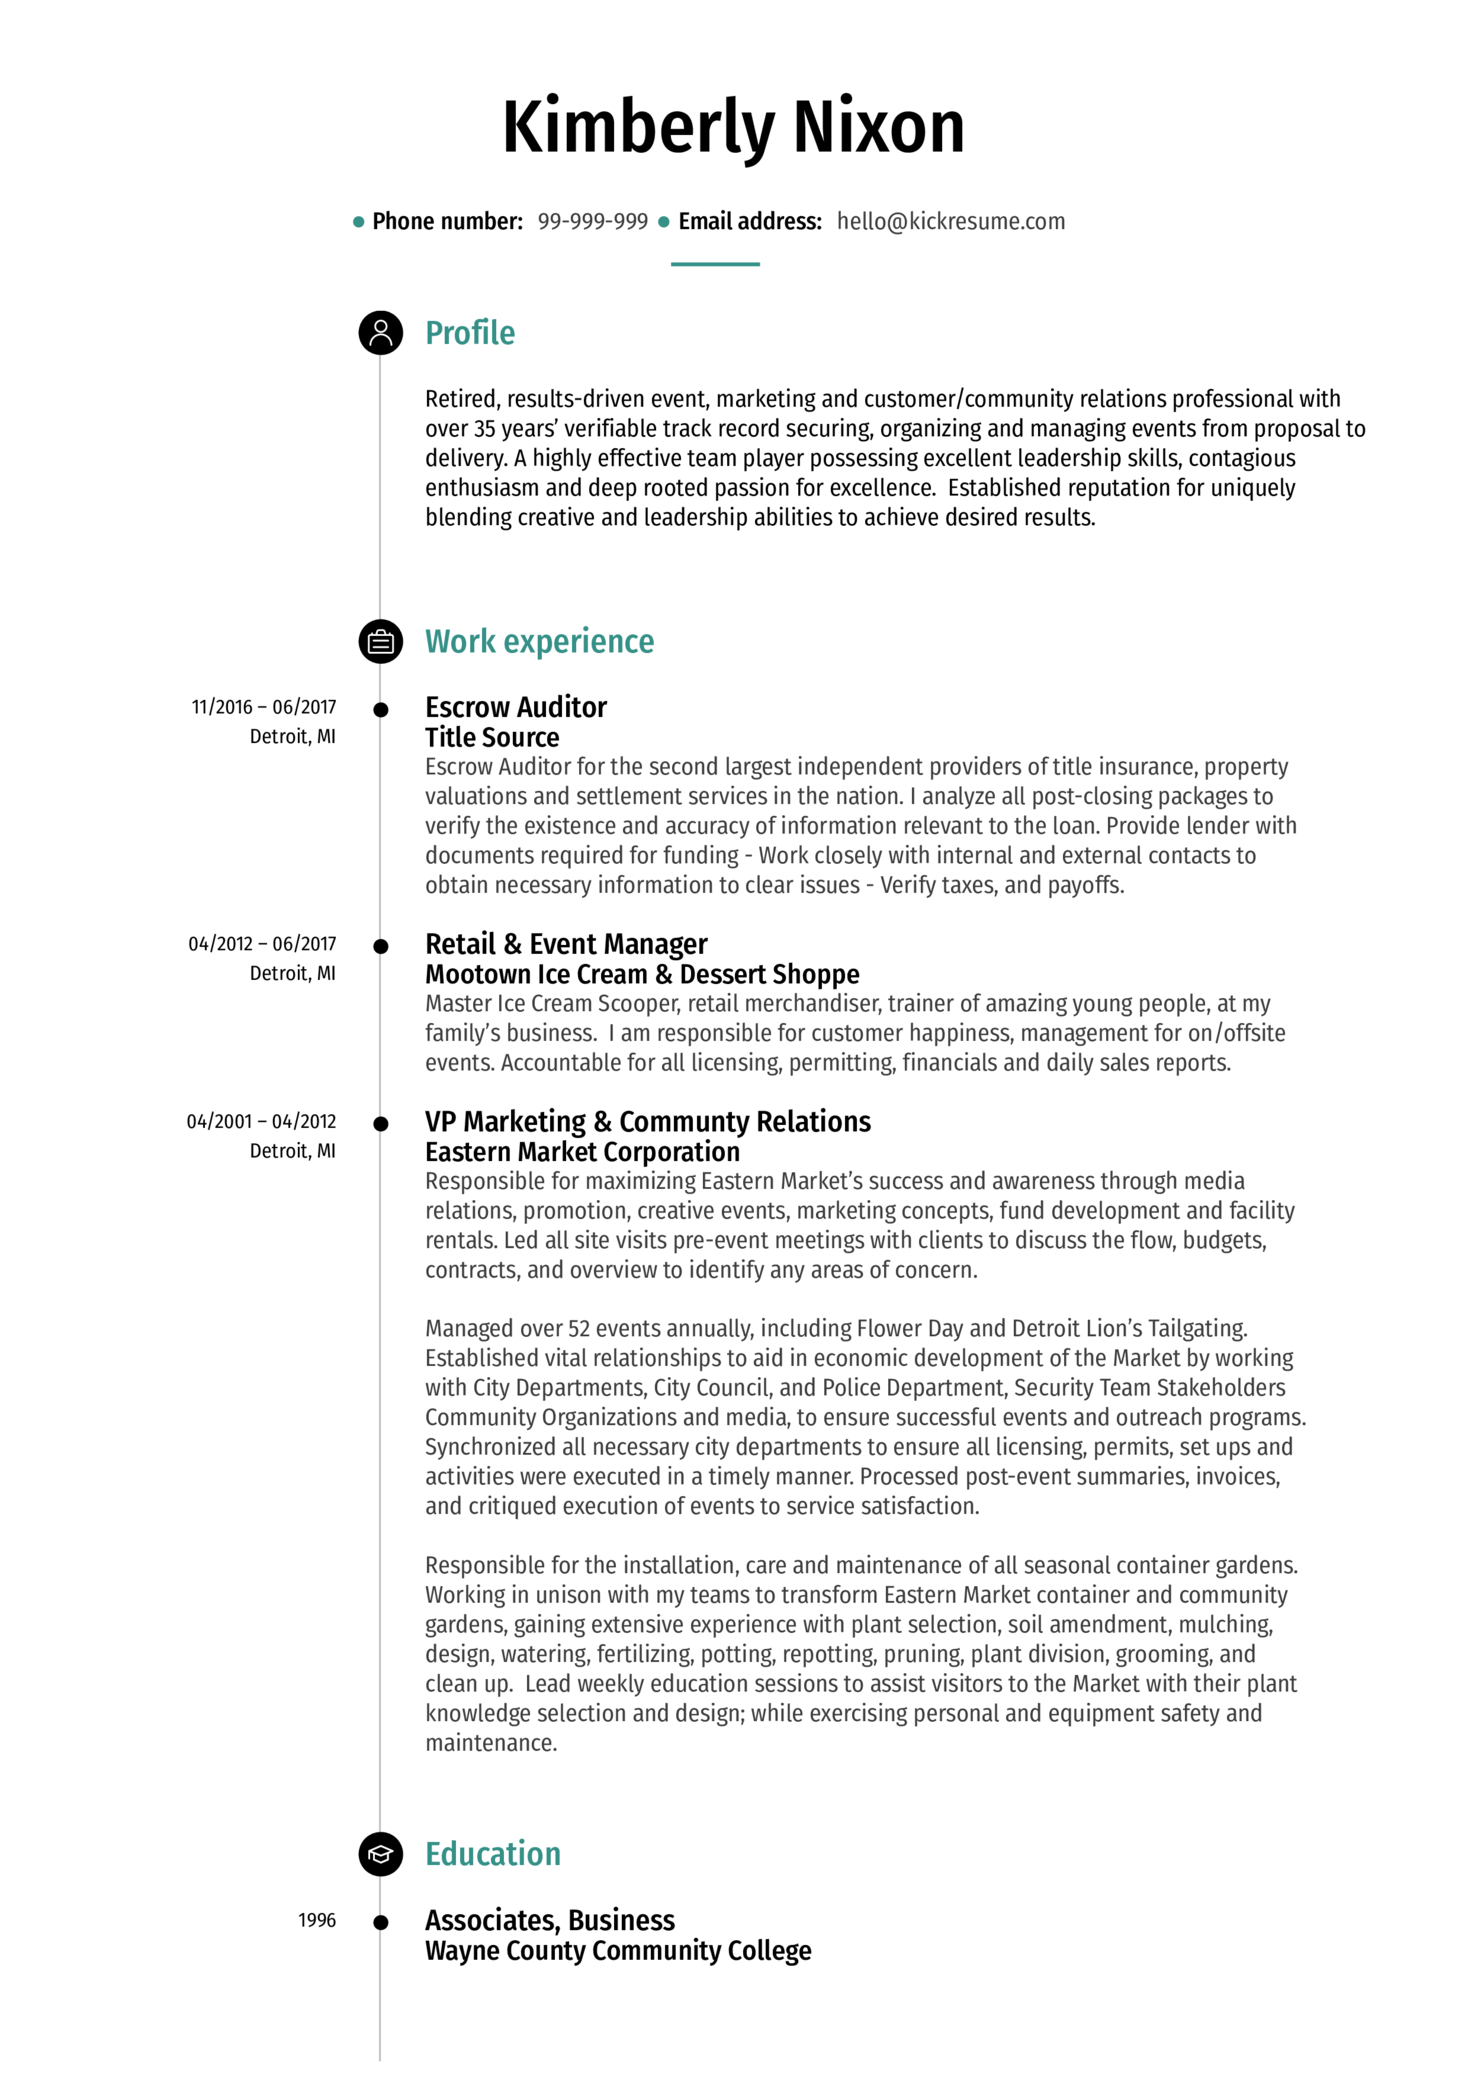 Escrow Auditor Resume Example (Part 1)